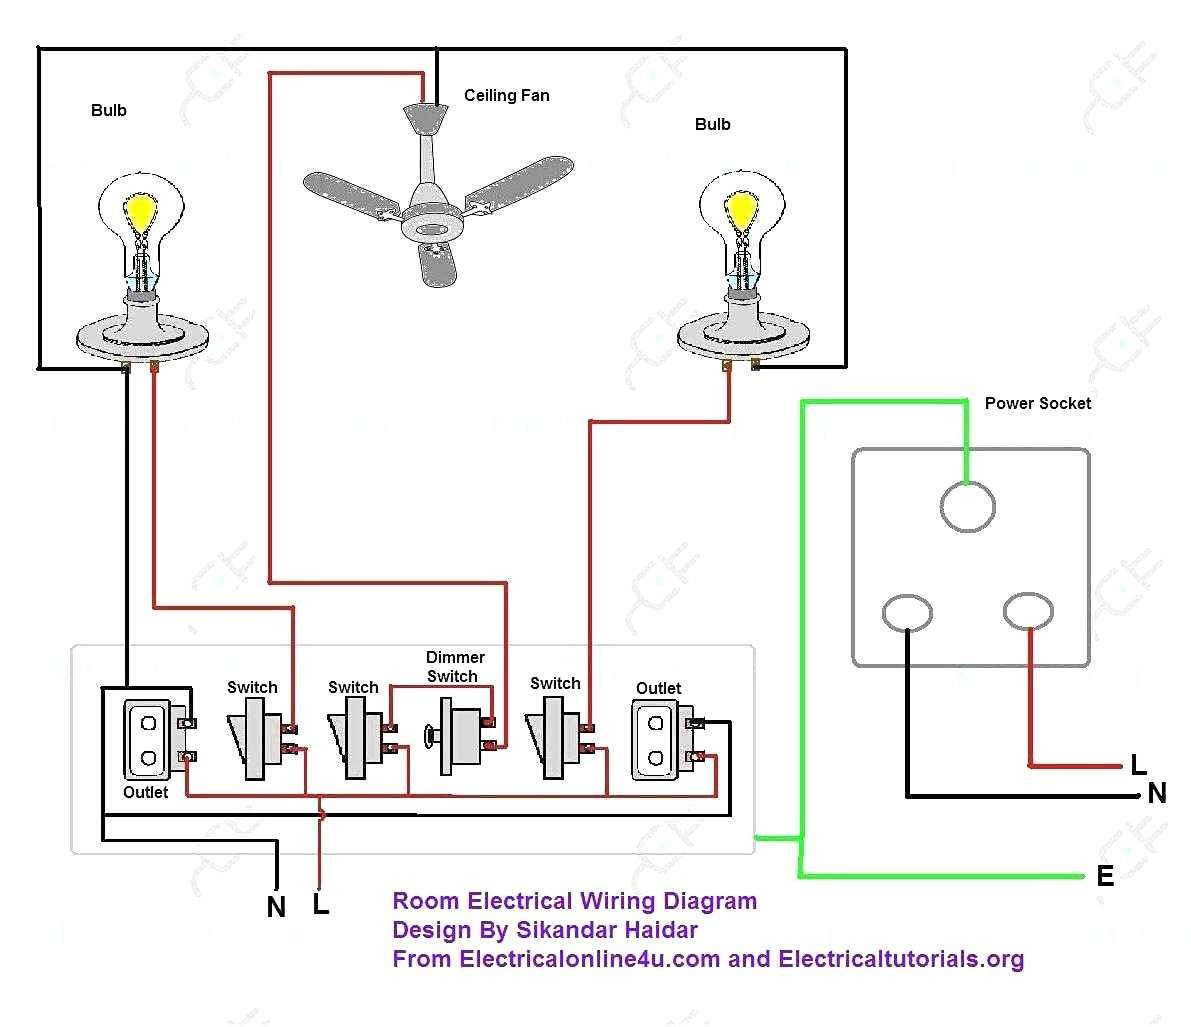 Wiring Diagram Home Electrical Wiring House Wiring Electrical Wiring